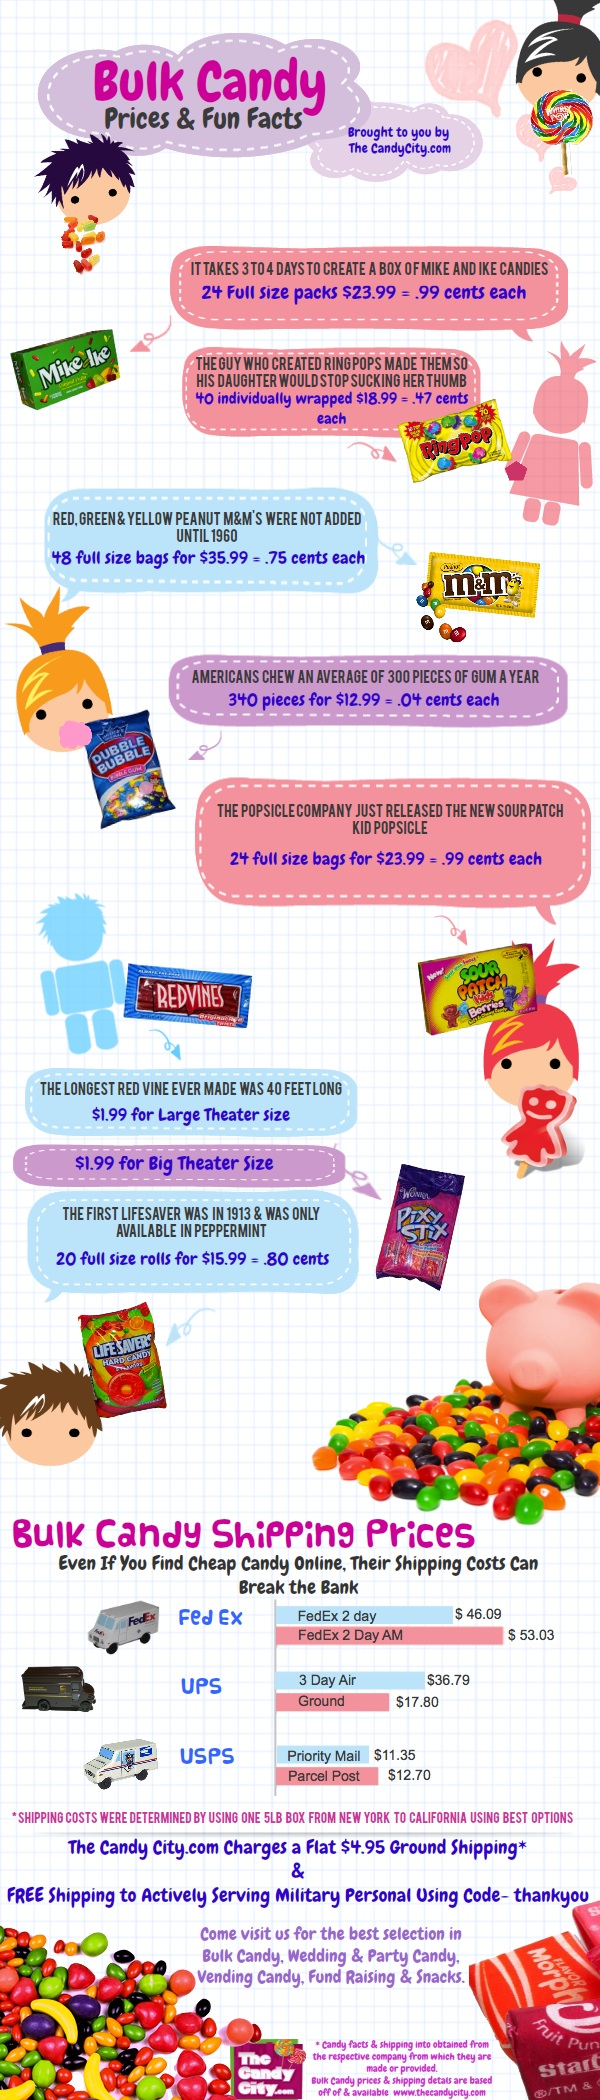 Facts about Bulk Candy